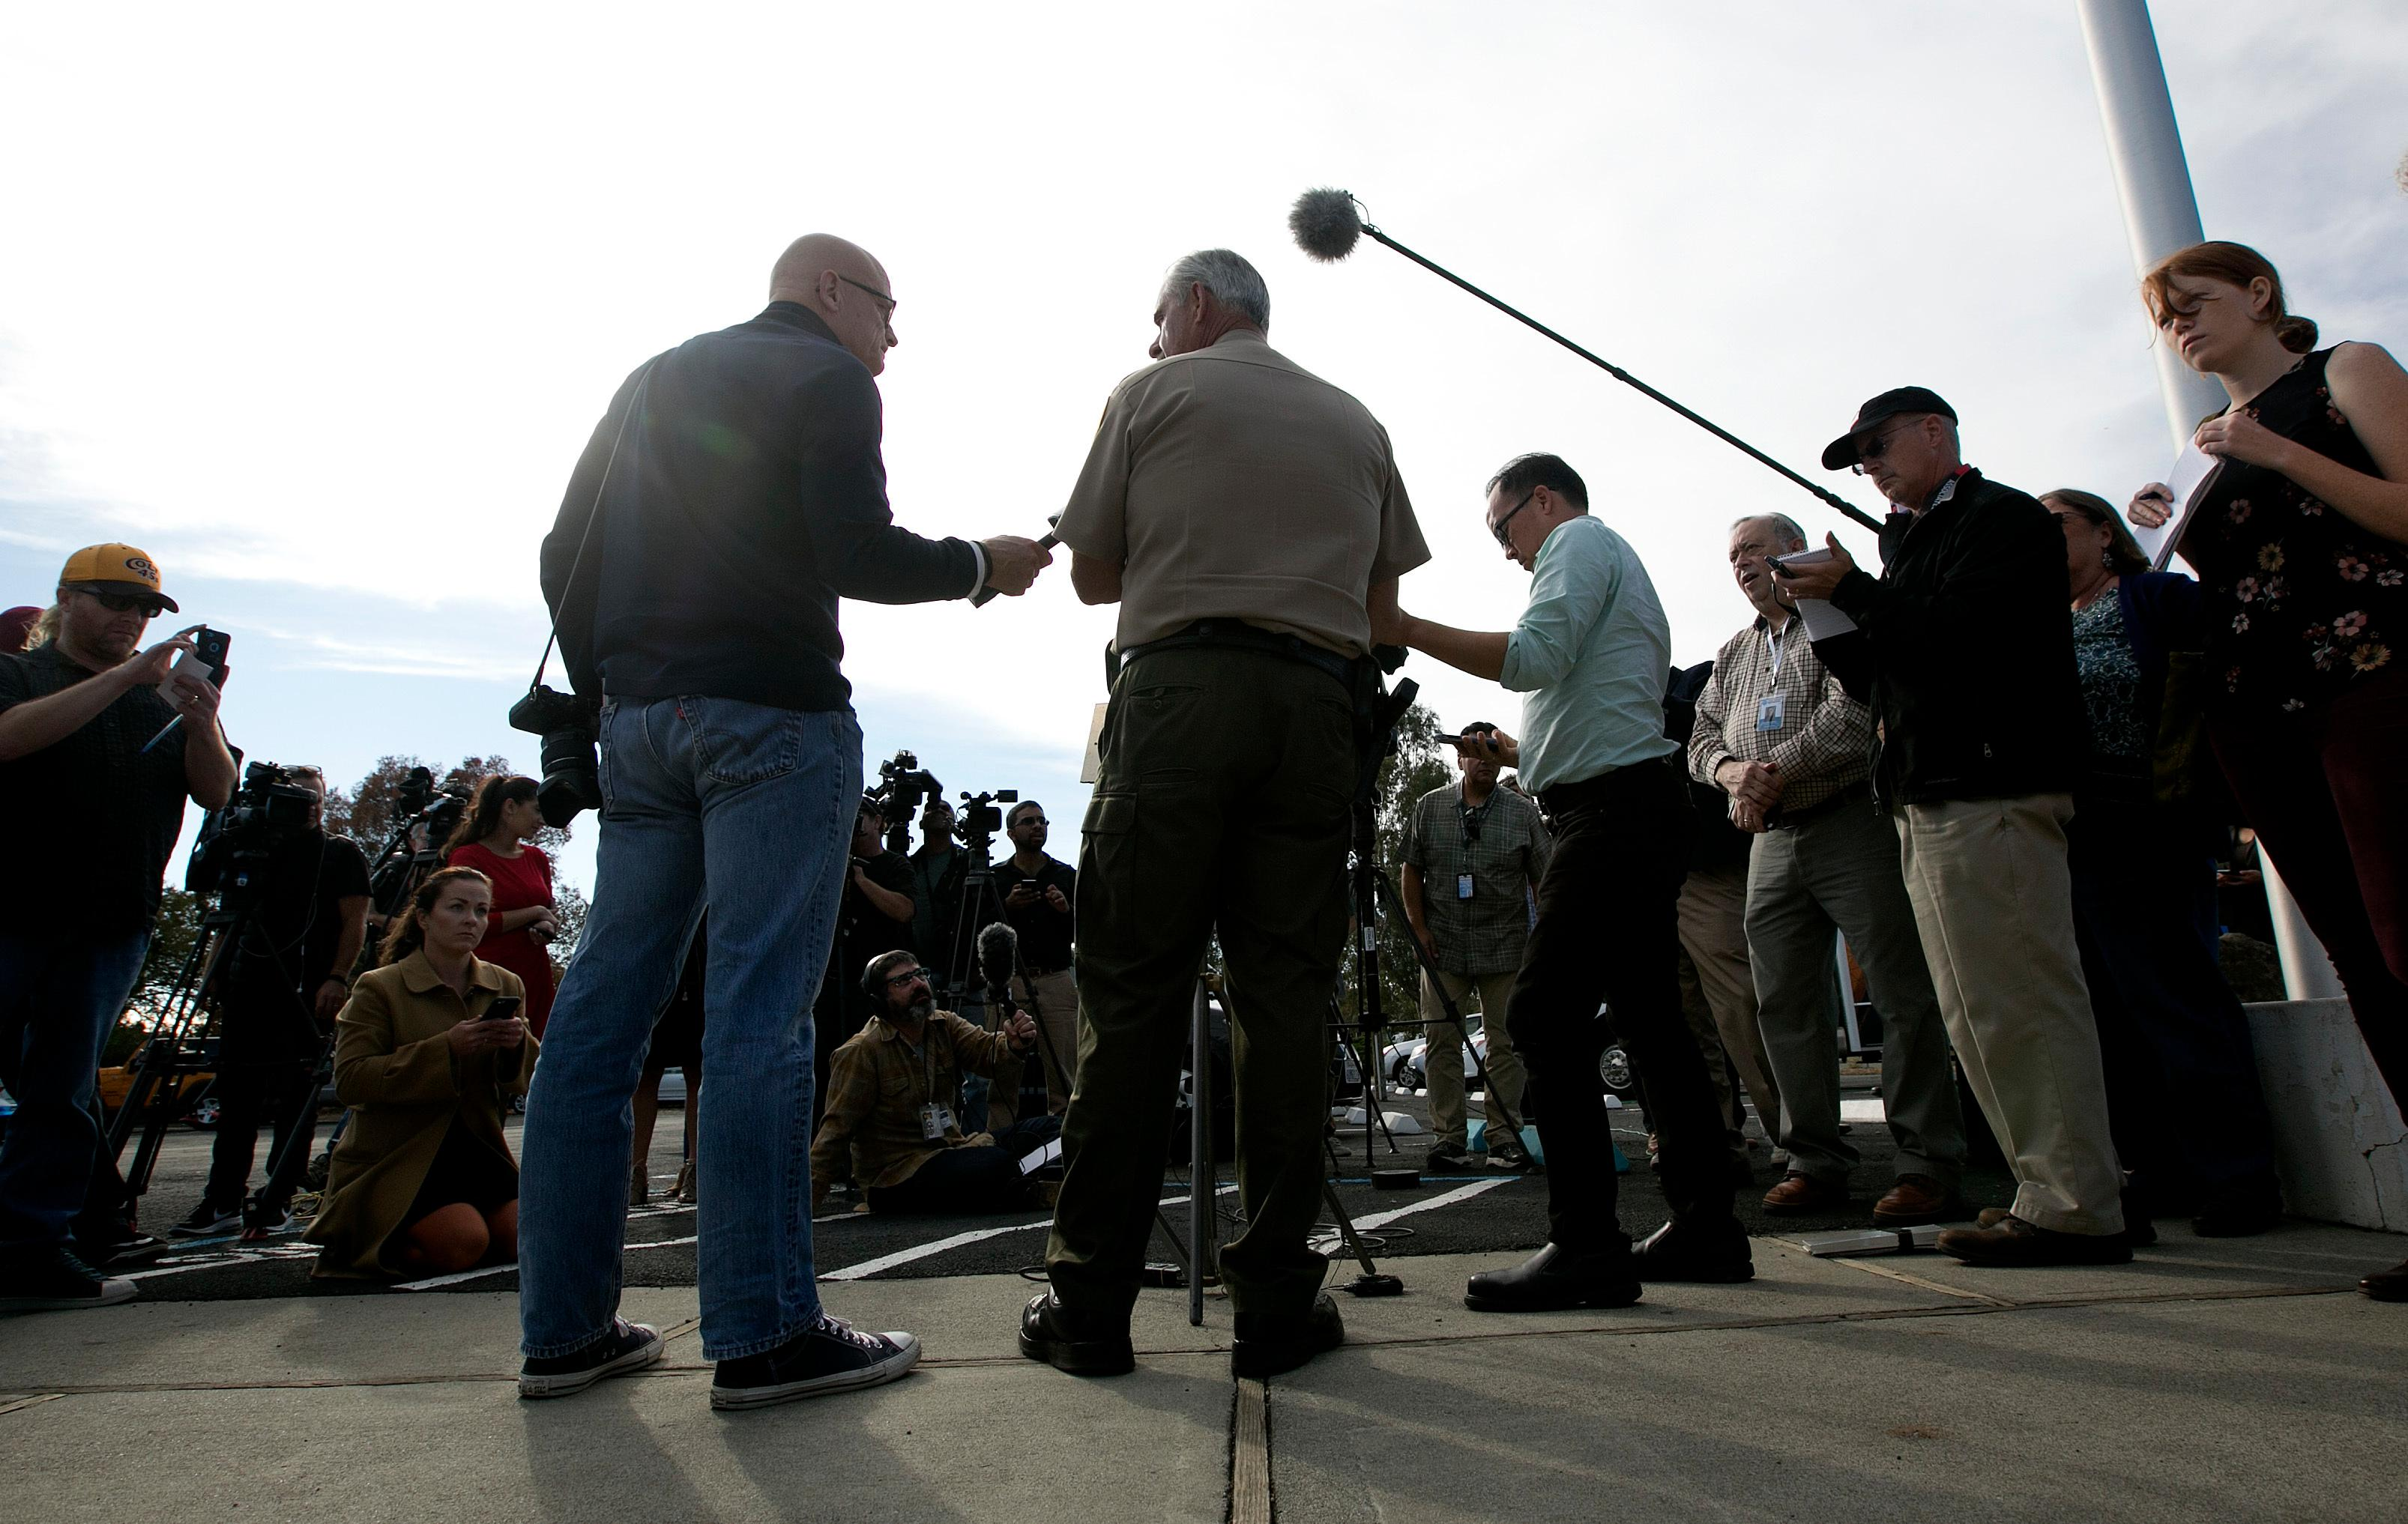 Phil Johnston, center, the assistant sheriff for Tehama County, briefs reporters on the shootings near the Rancho Tehama Elementary School, Tuesday, Nov. 14, 2017, in Corning, Calif. Law enforcement says that five people, including the shooter were killed, and several people including some children were injured and taken to area hospitals. (AP Photo/Rich Pedroncelli)